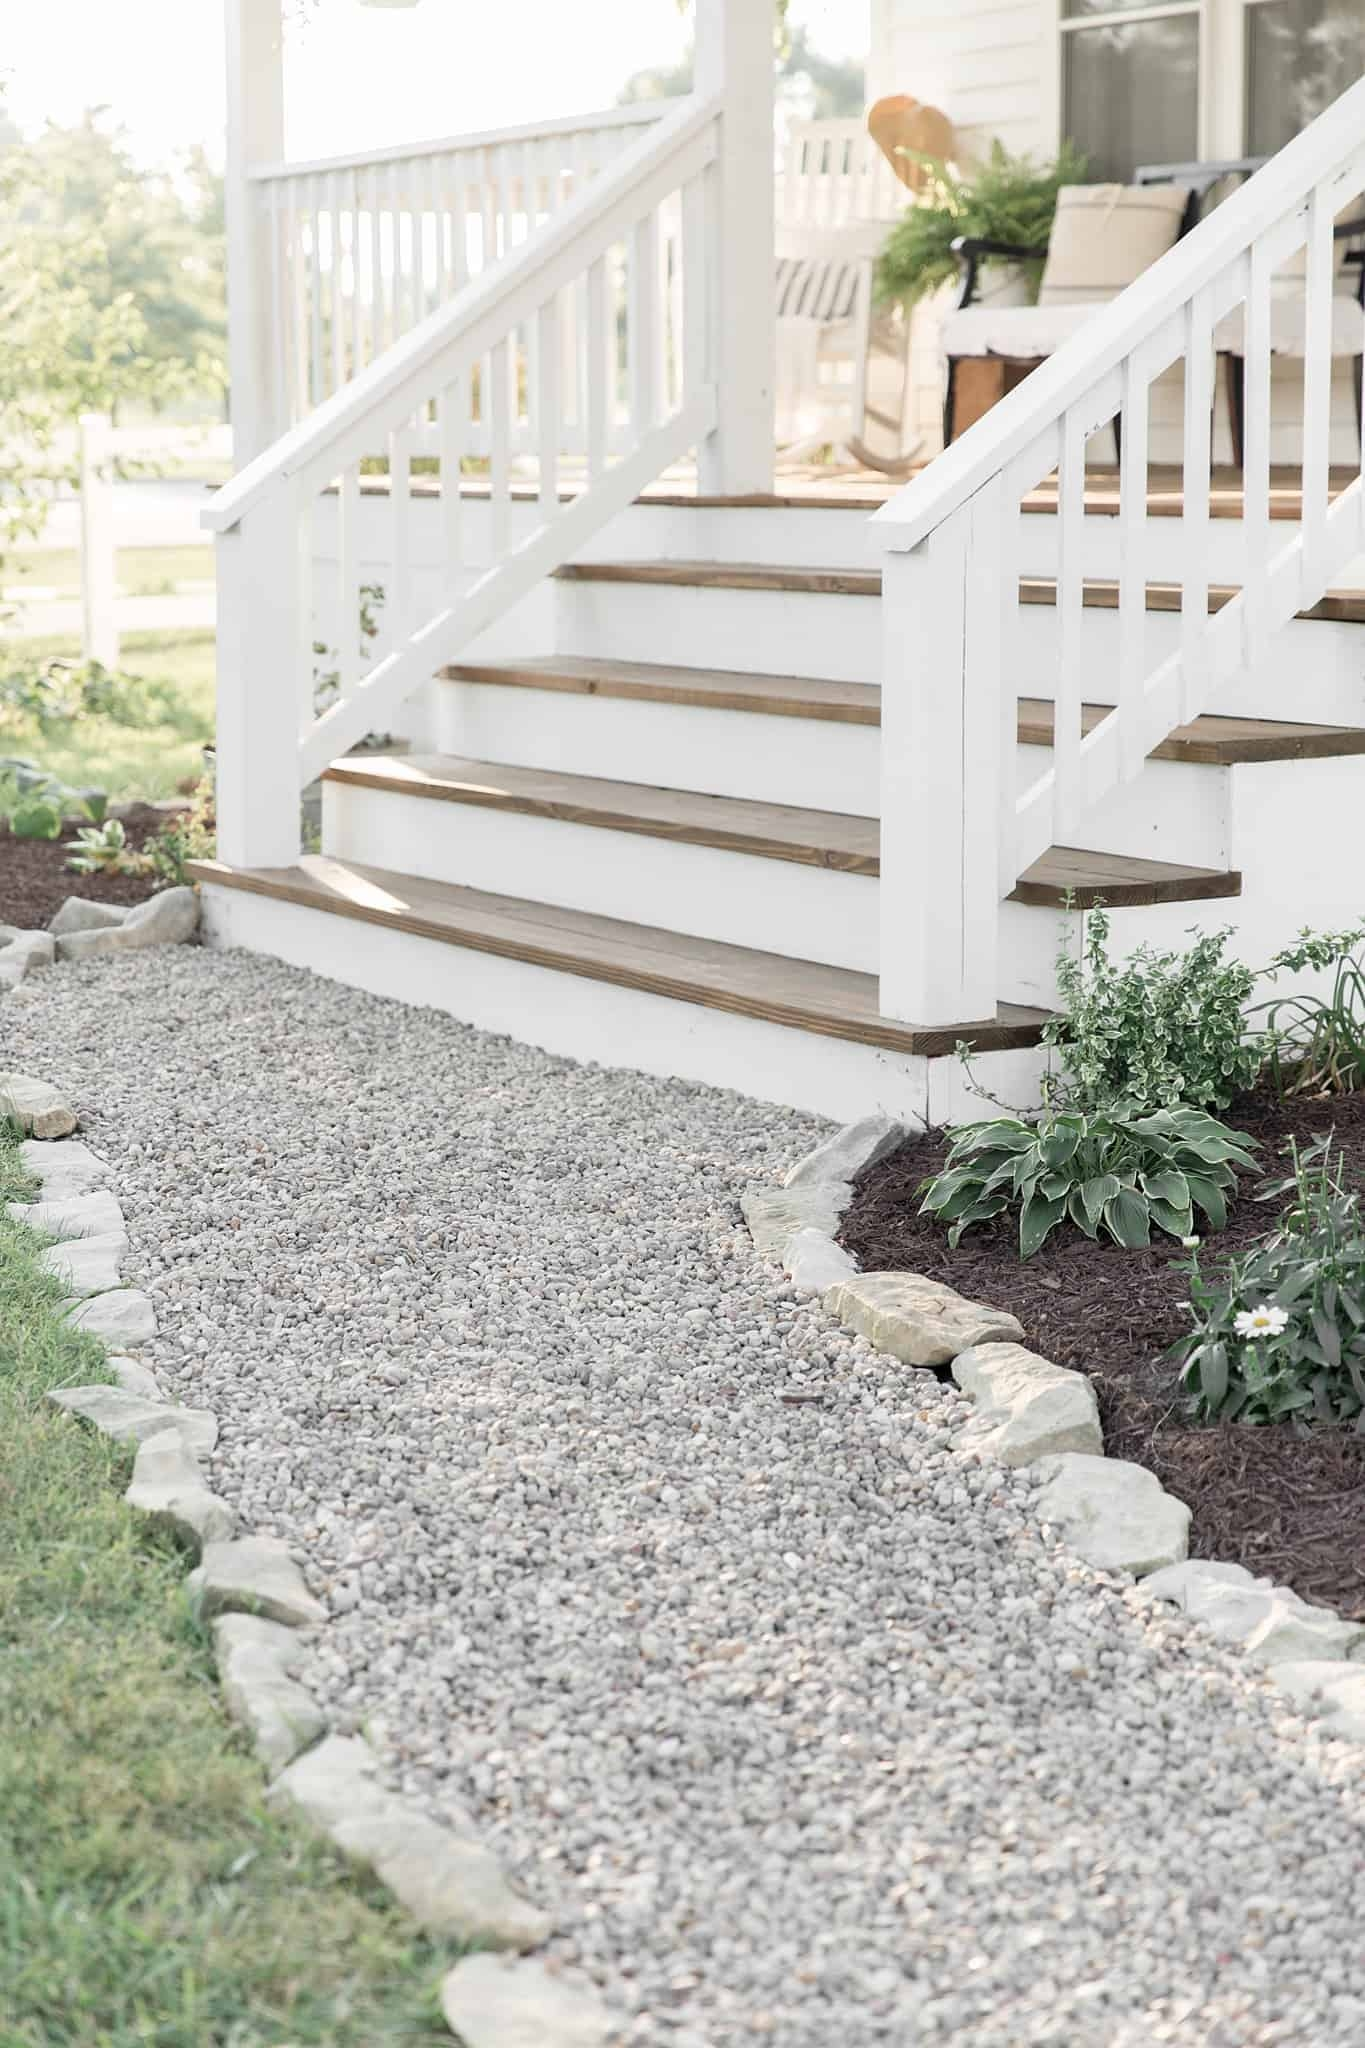 How To Cover Concrete Steps With Wood Farmhouse On Boone   Putting Wood Over Concrete Steps   Wood Flooring   Front Porch   Building   Flooring   Composite Decking